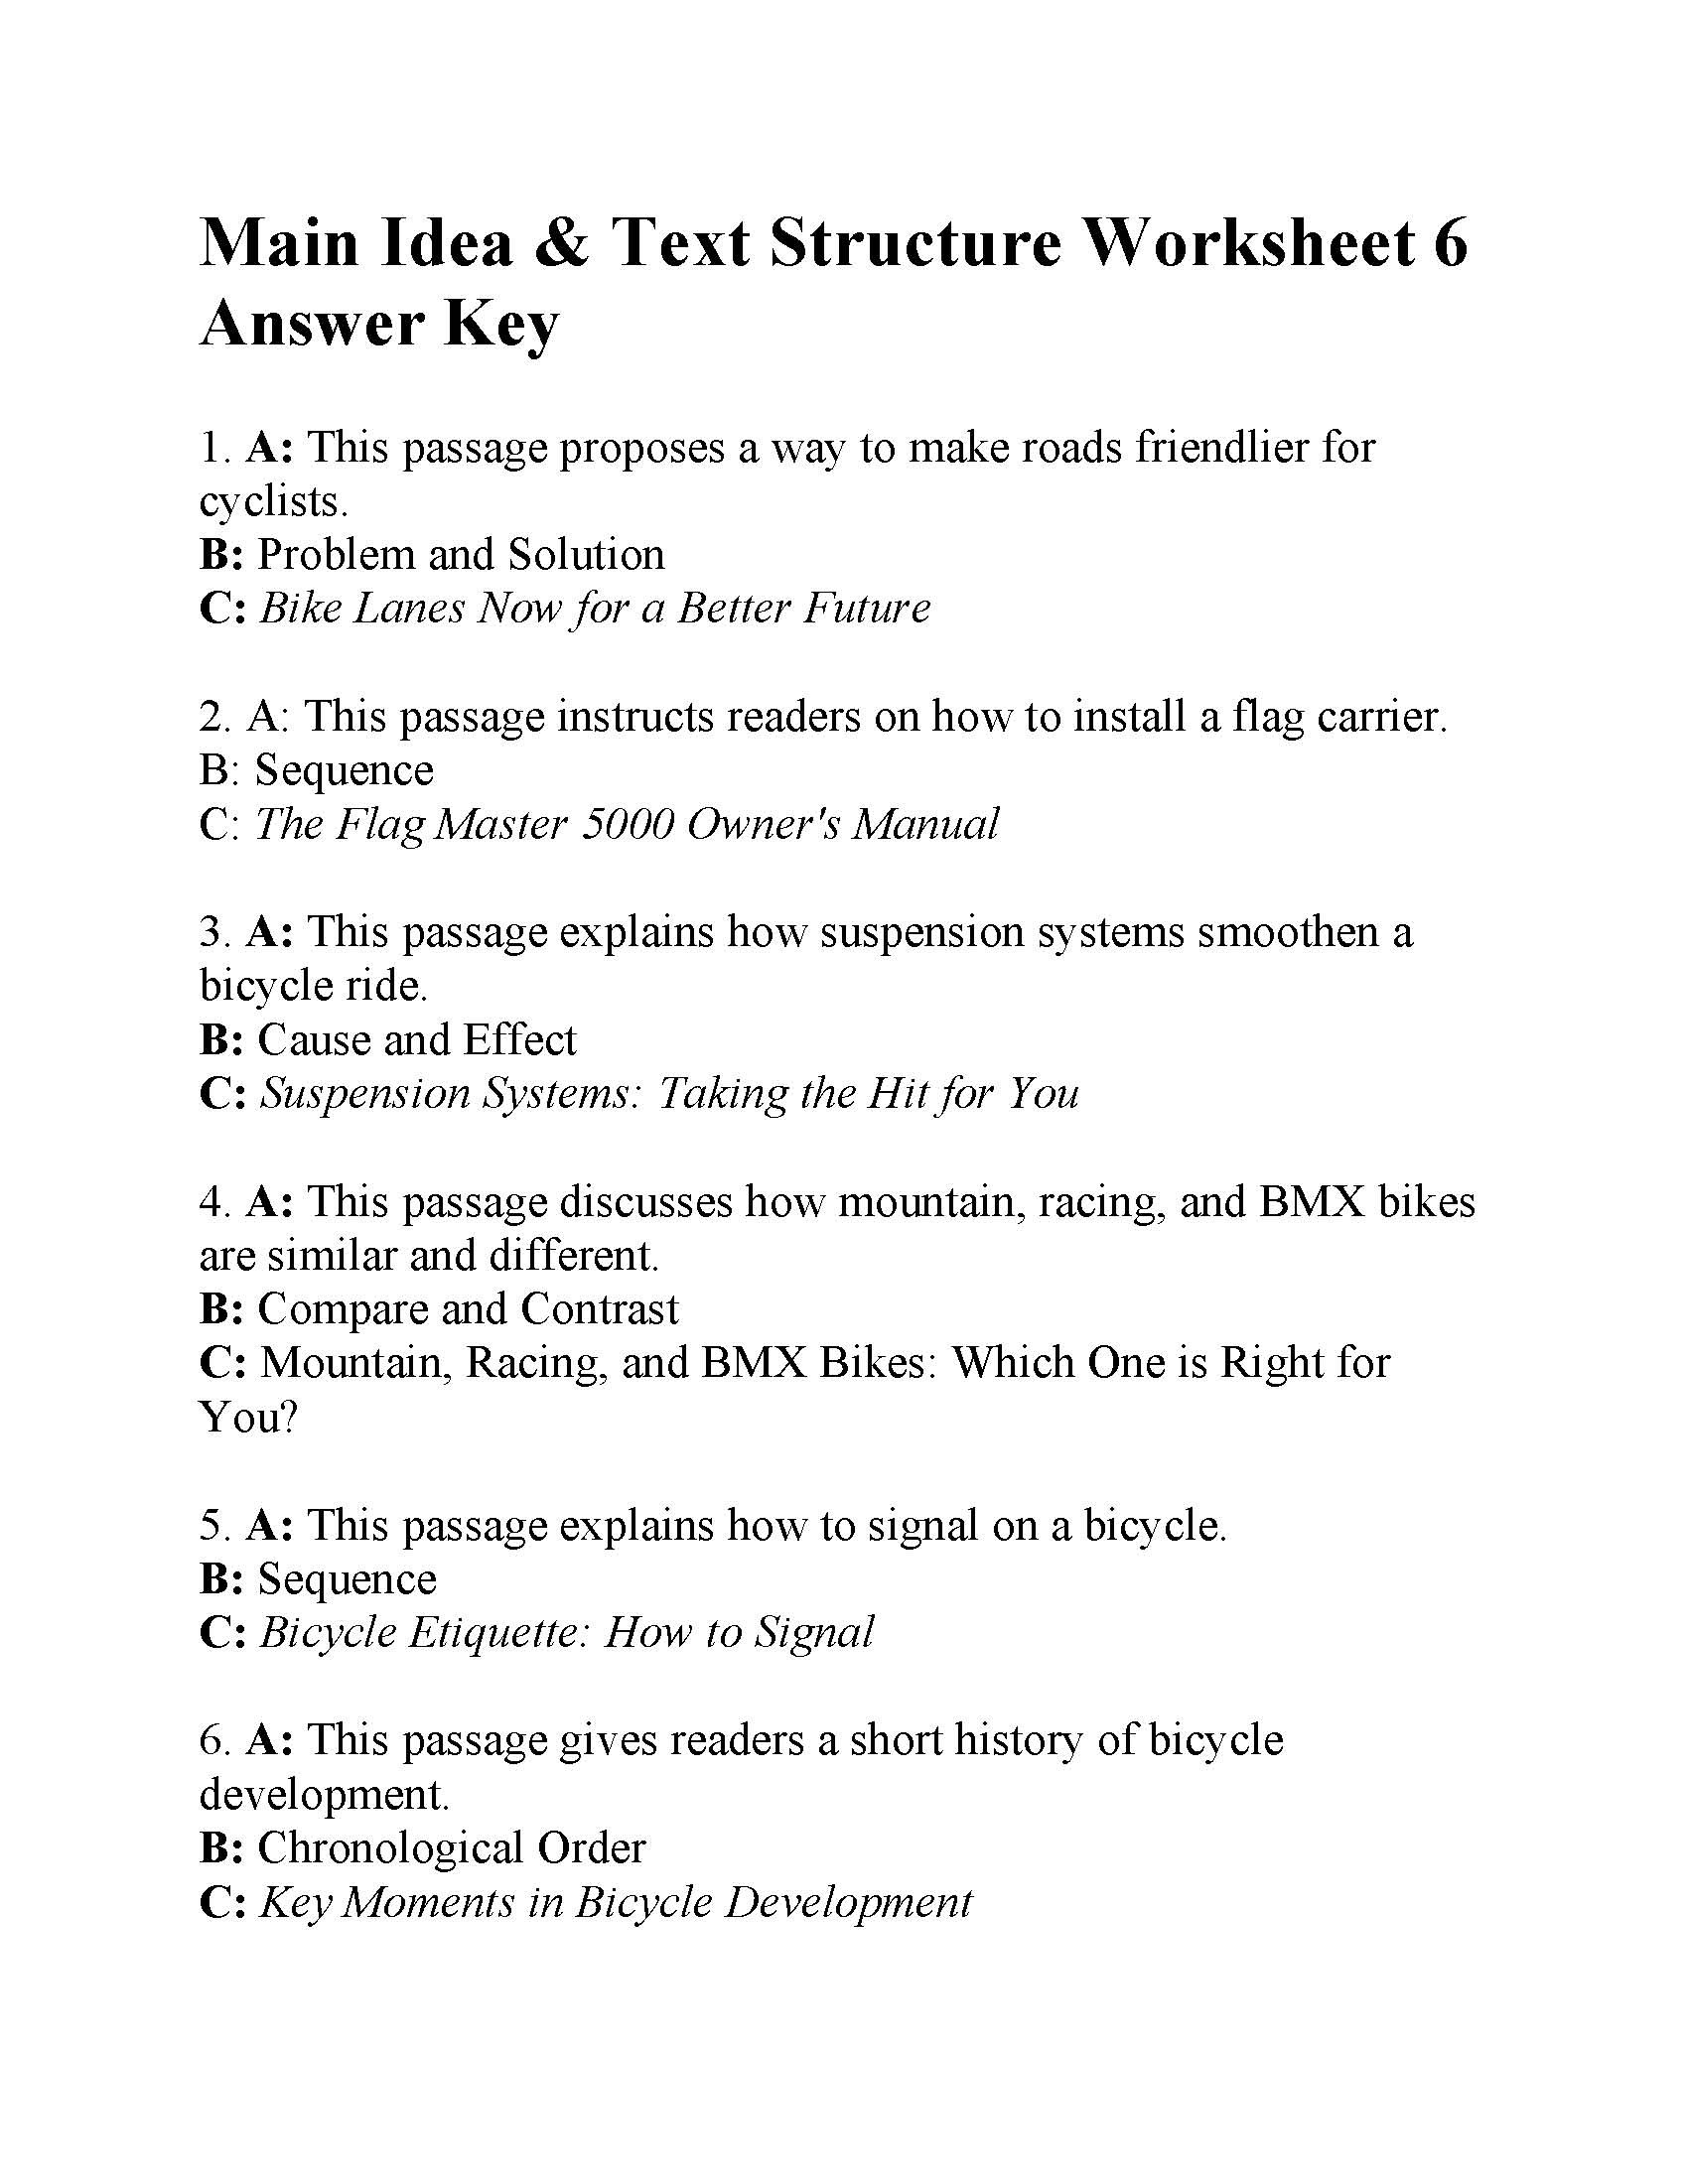 Text Structure 5th Grade Worksheets Main Idea and Text Structure Worksheet Answers Ereading